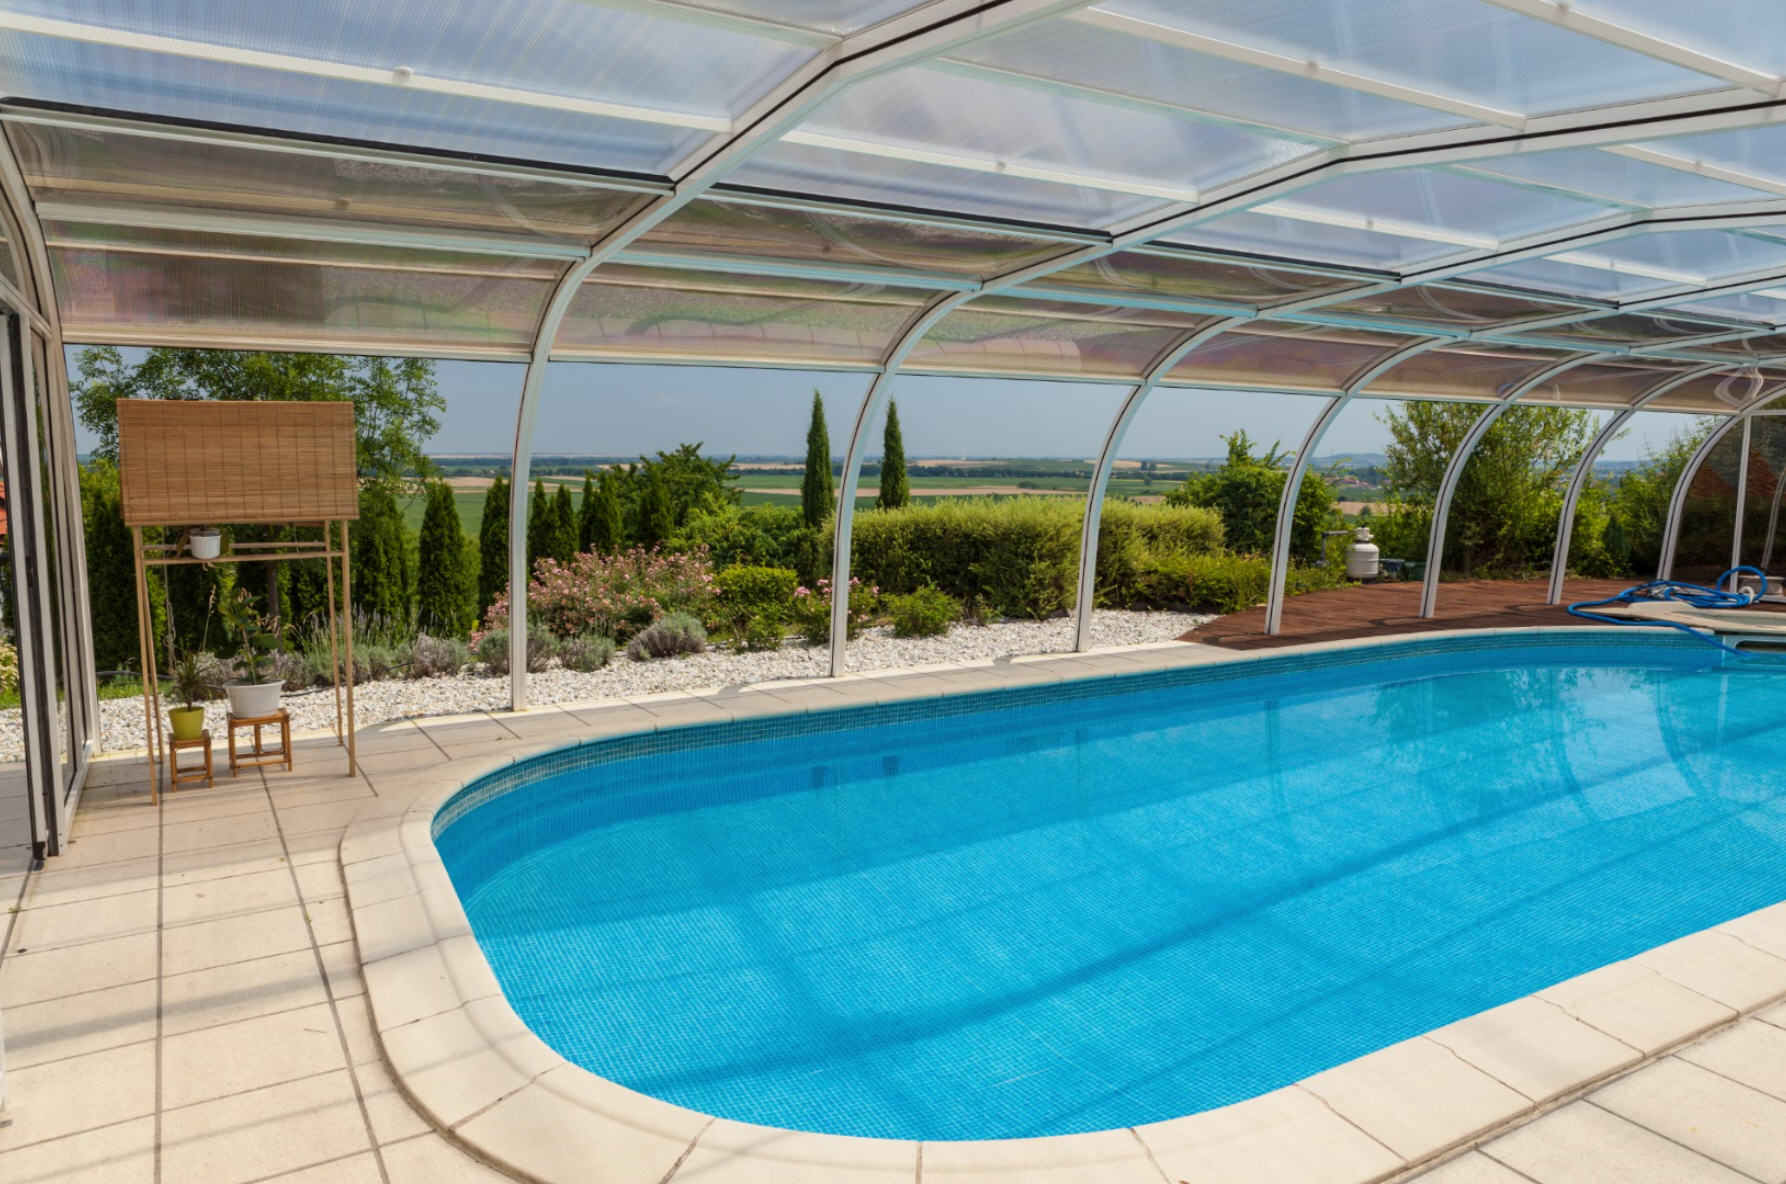 Galaxy-Freestanding-Fixed-Pool-Enclosure-04